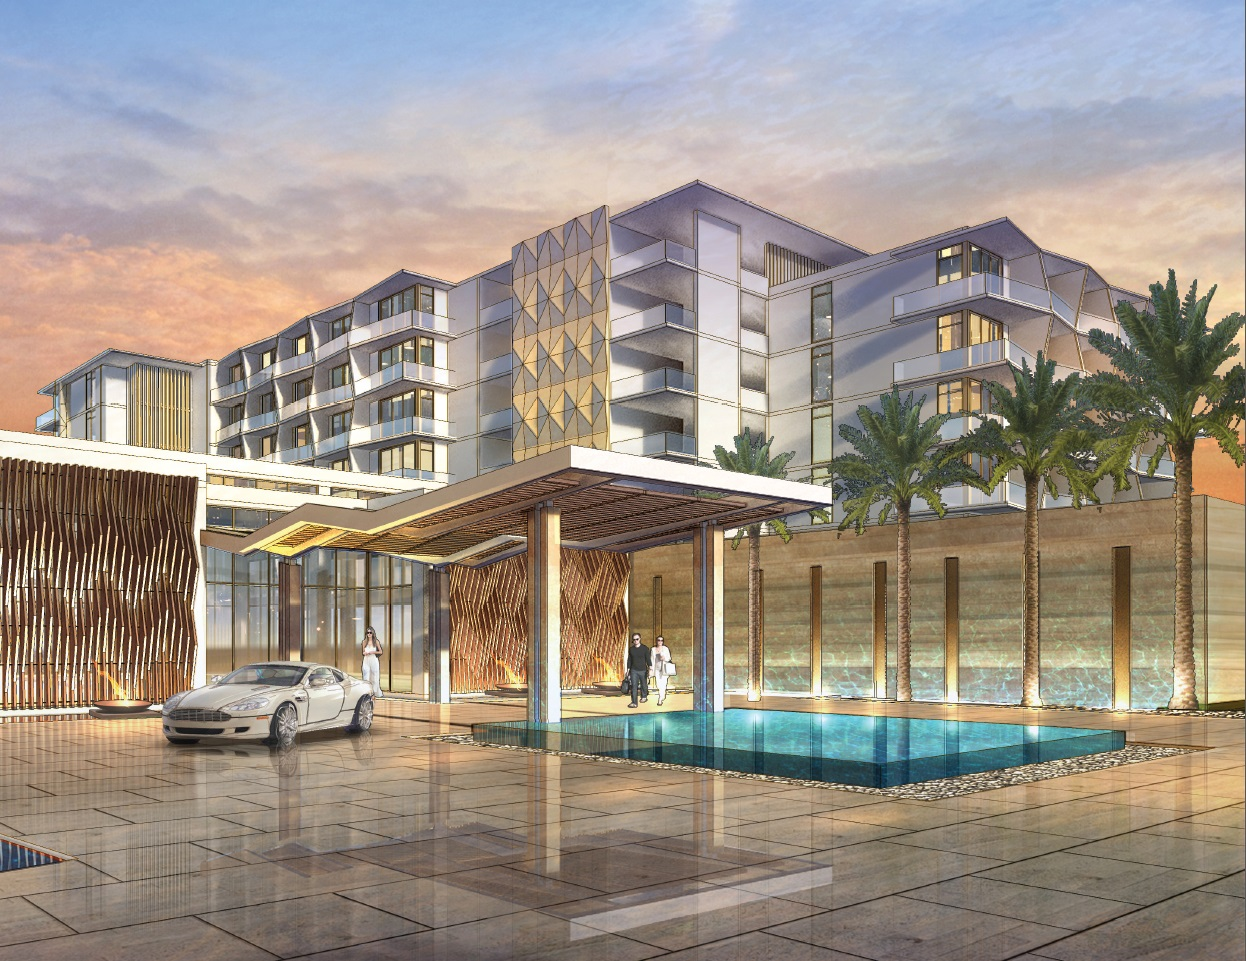 Hilton Announces Mexico Expansion With Hilton Cancun